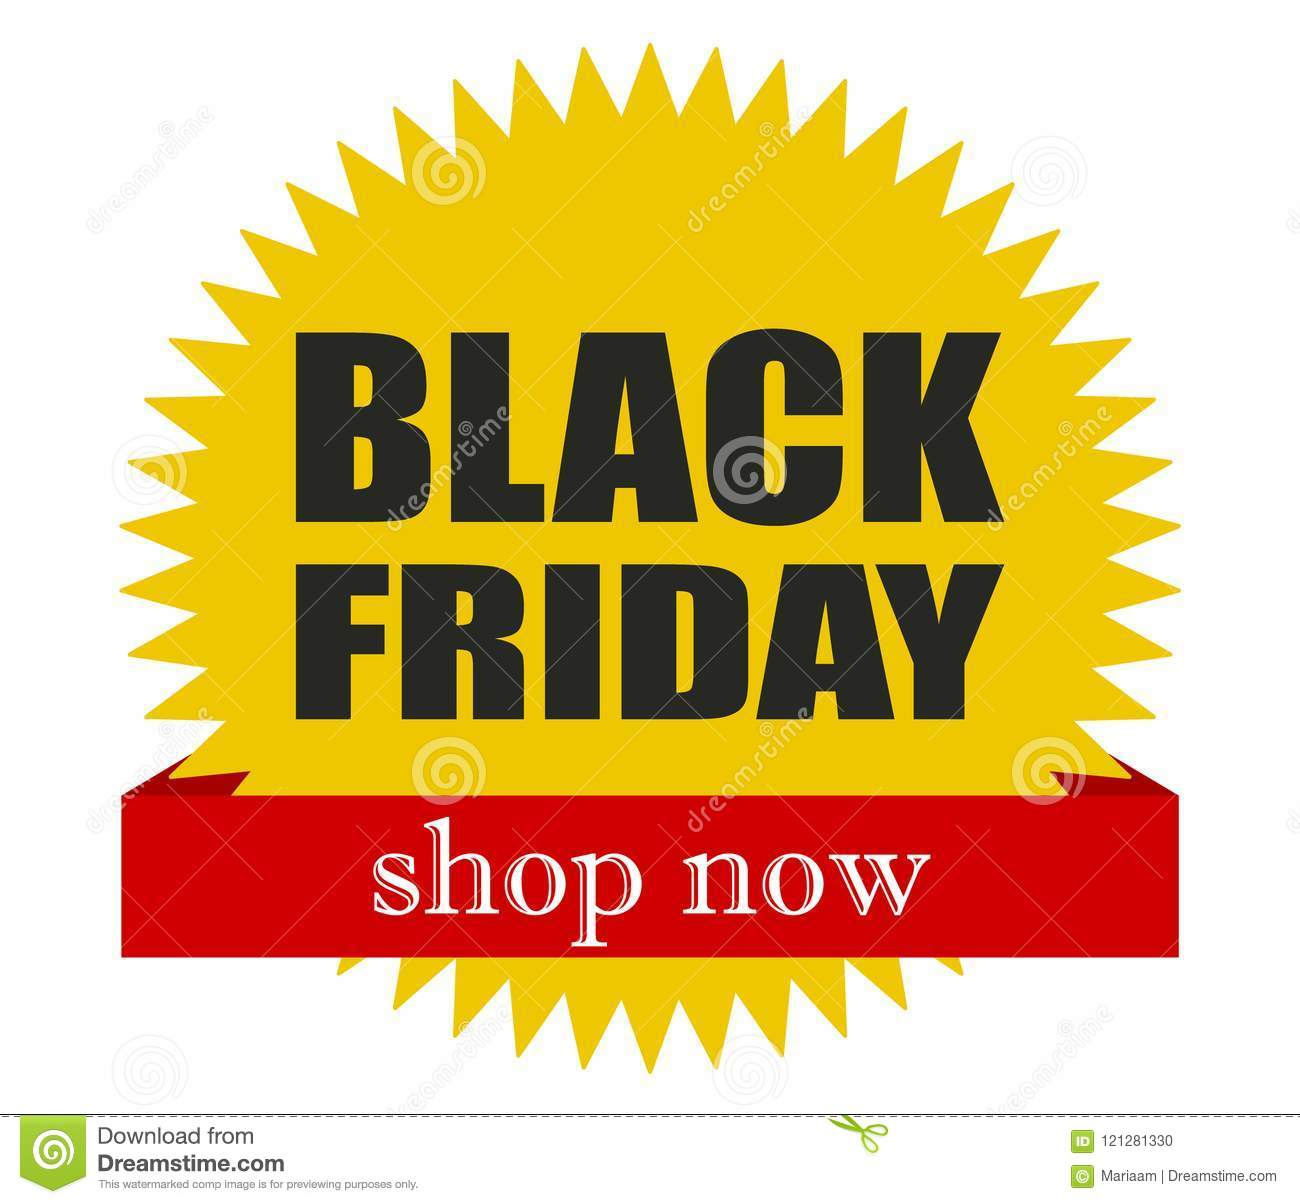 20a54b6ac3 Black friday! Shop now. Great deals. Special offers. Vector flat design.